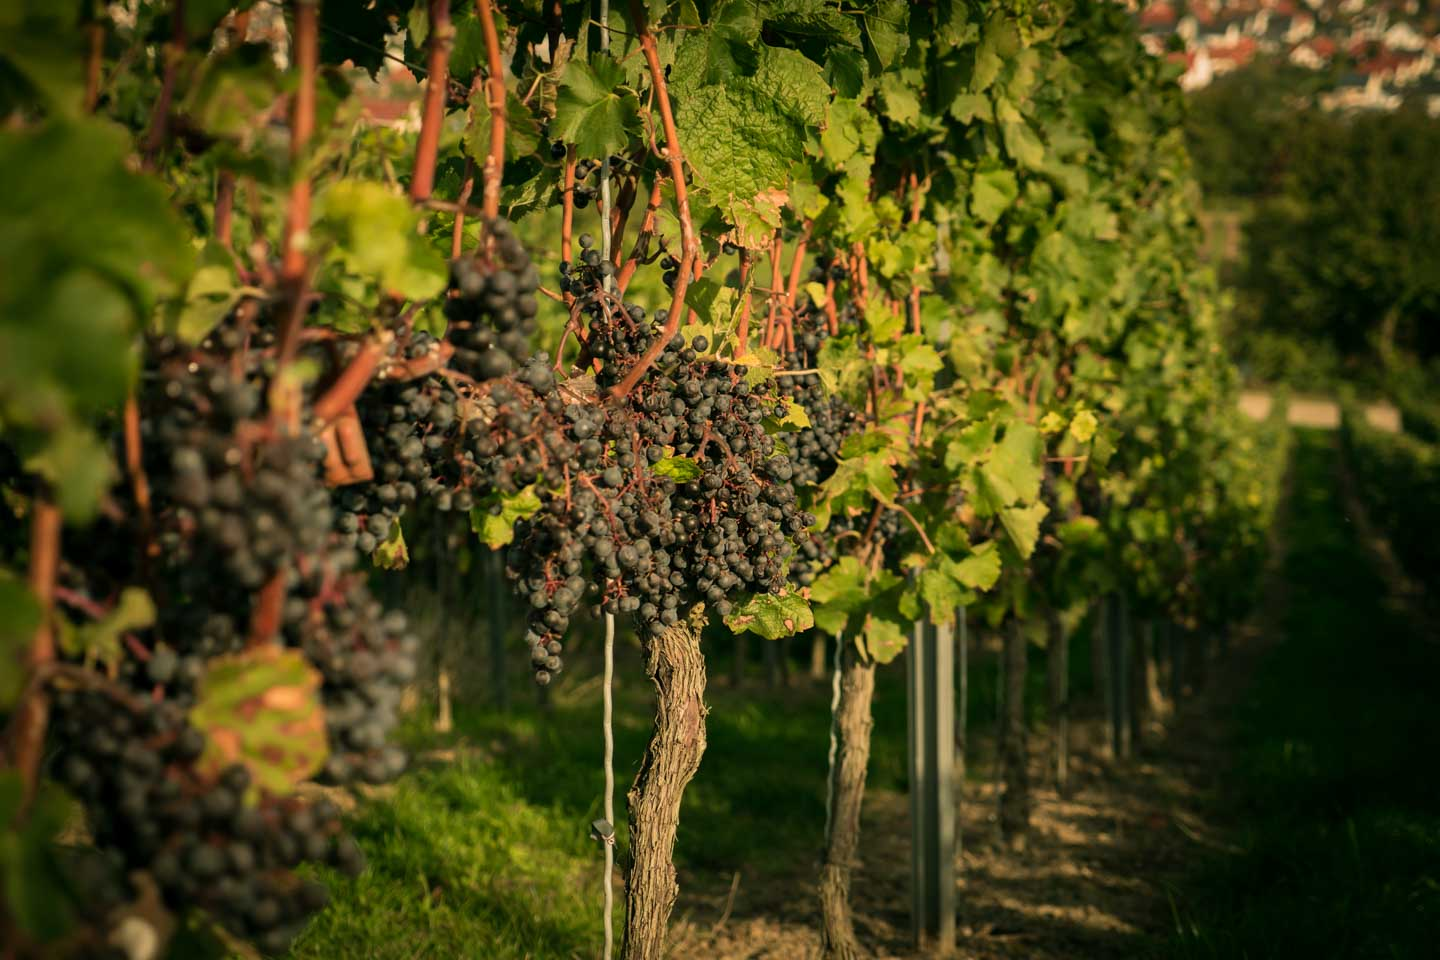 Ripe grapes at Rheingau gourmet hike / Schlemmerwanderung in Oppenheim 2015